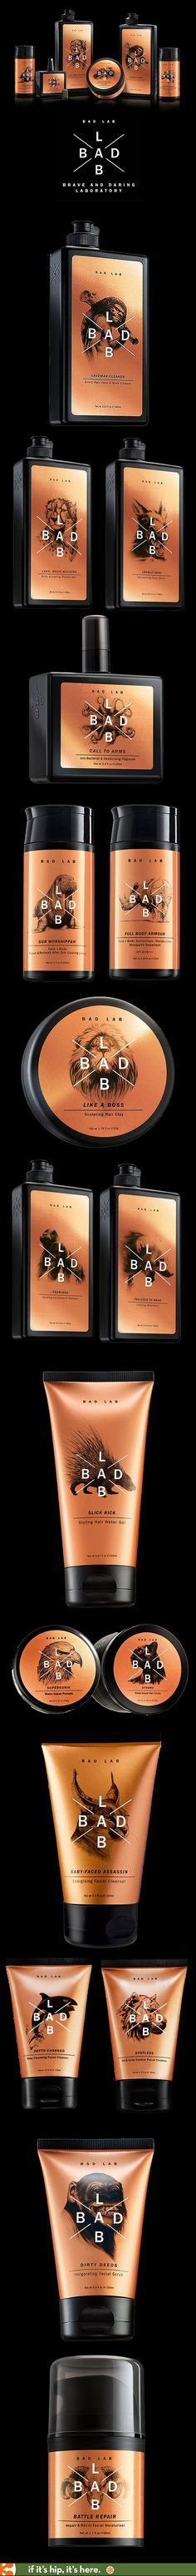 Bad Lab Co.- grooming products for men with terrific packaging, branding and attitude.